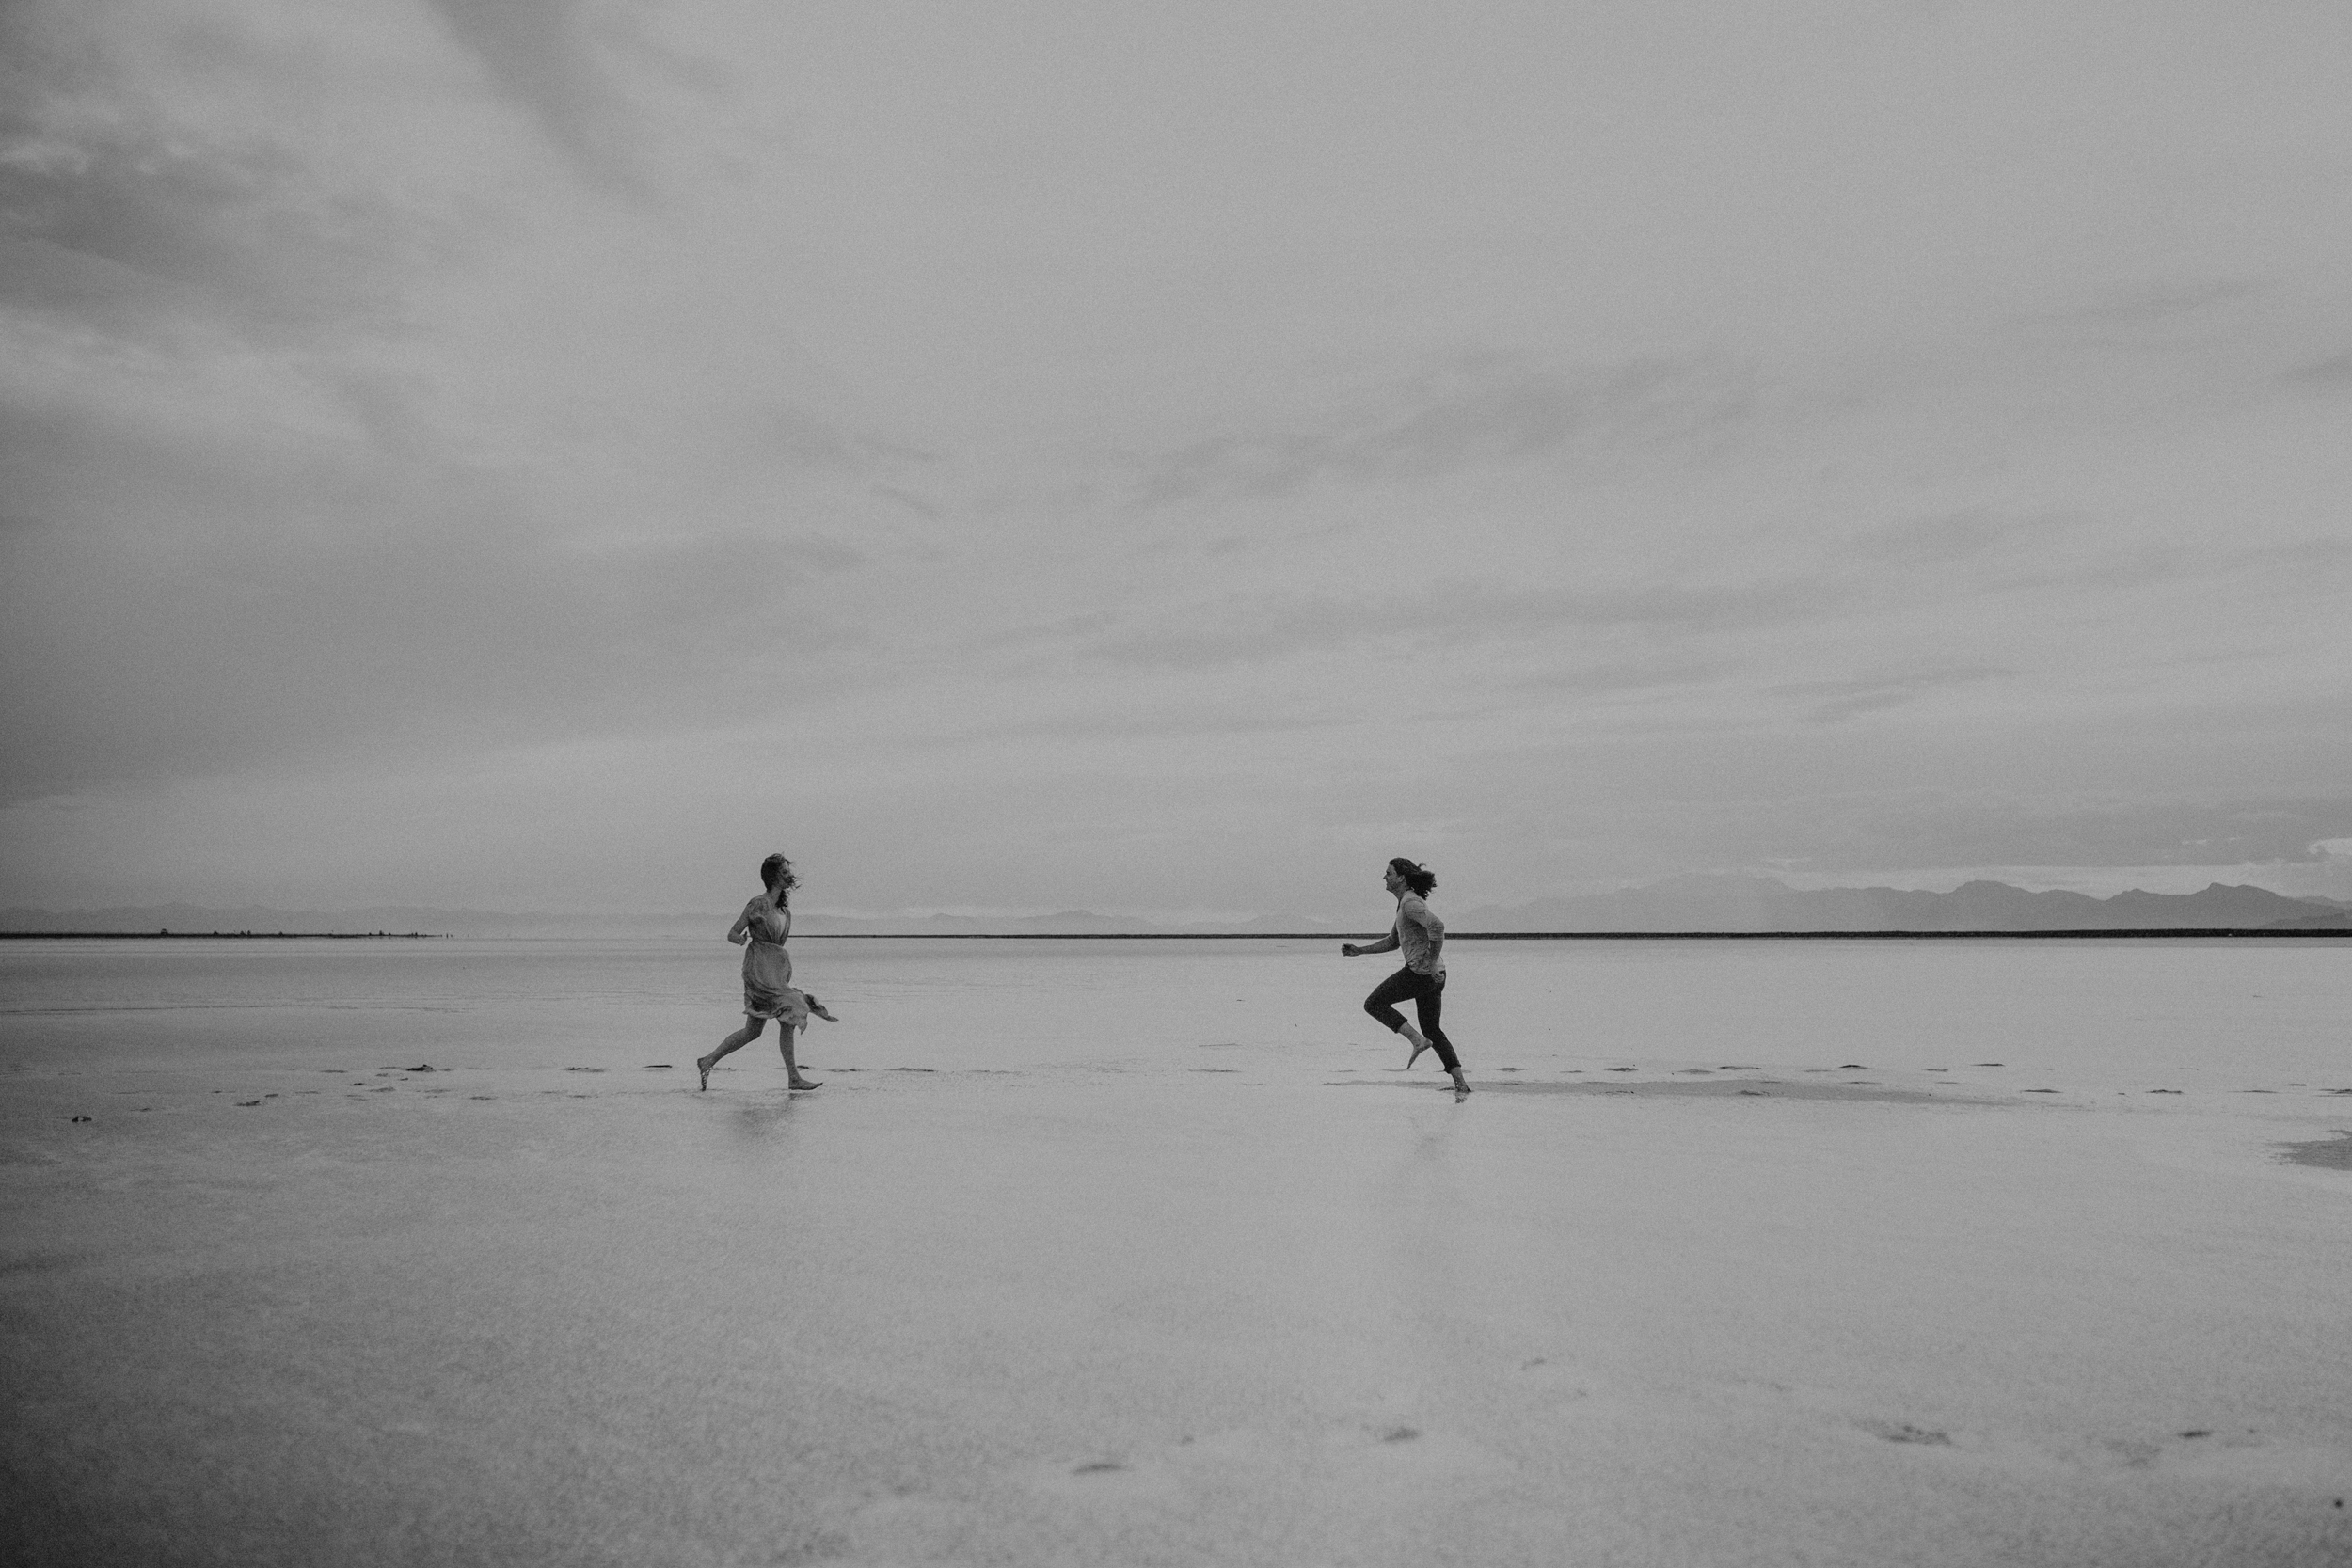 Couple running together on water and salt flats